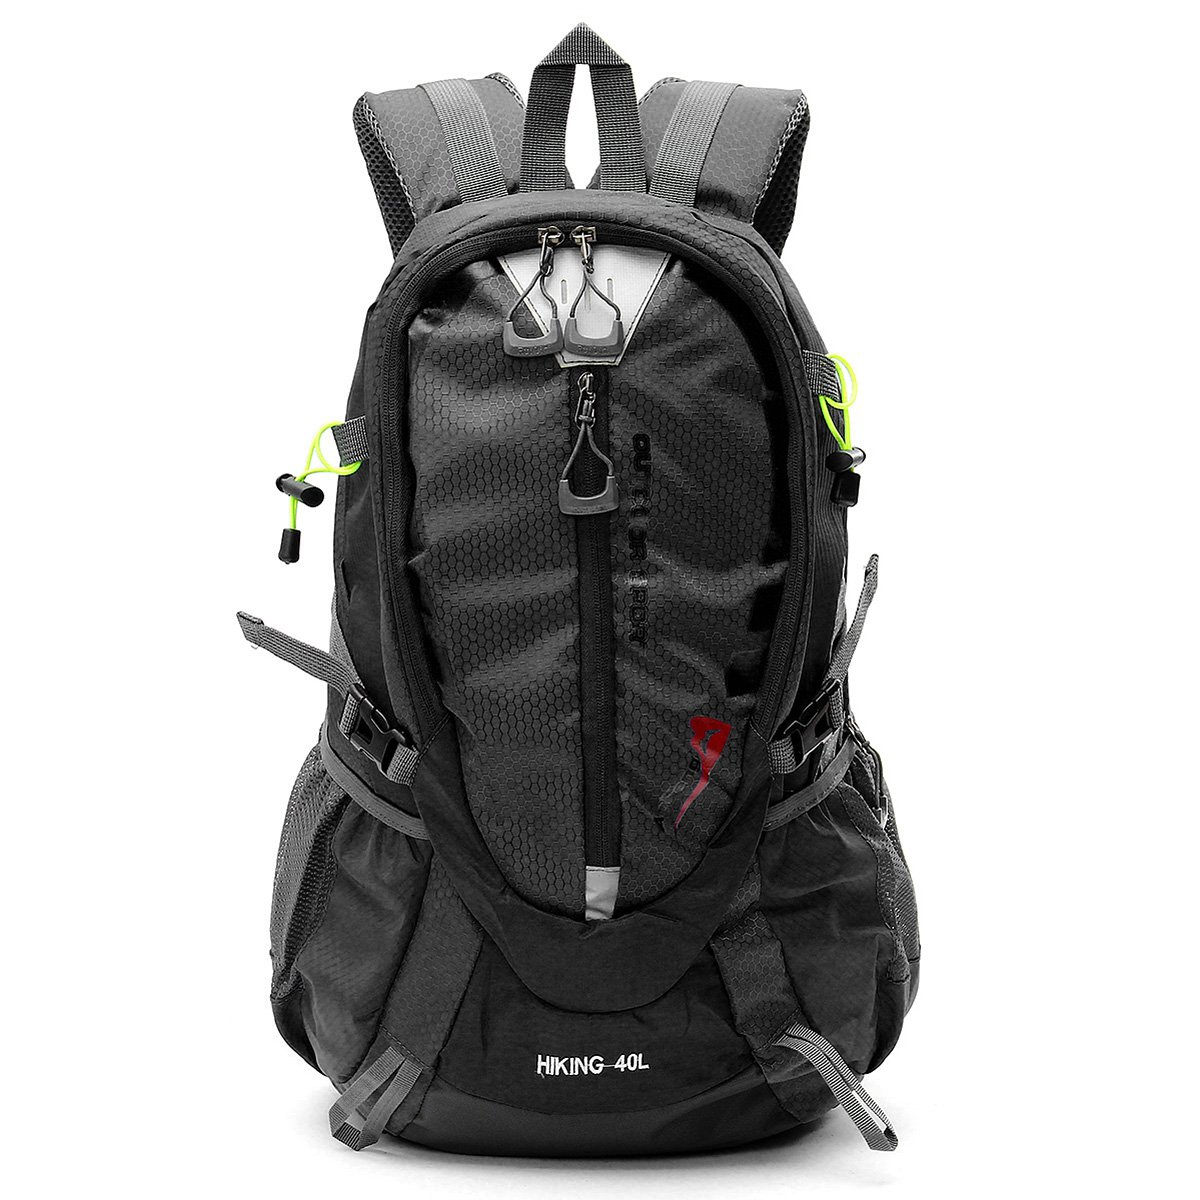 Black Outdoor Bag  Hiking & Climbing Bag  Laliva® 40L Waterproof Nylon Backpack Sports Travel Hiking Climbing Unisex Rucksack  (color  Black)